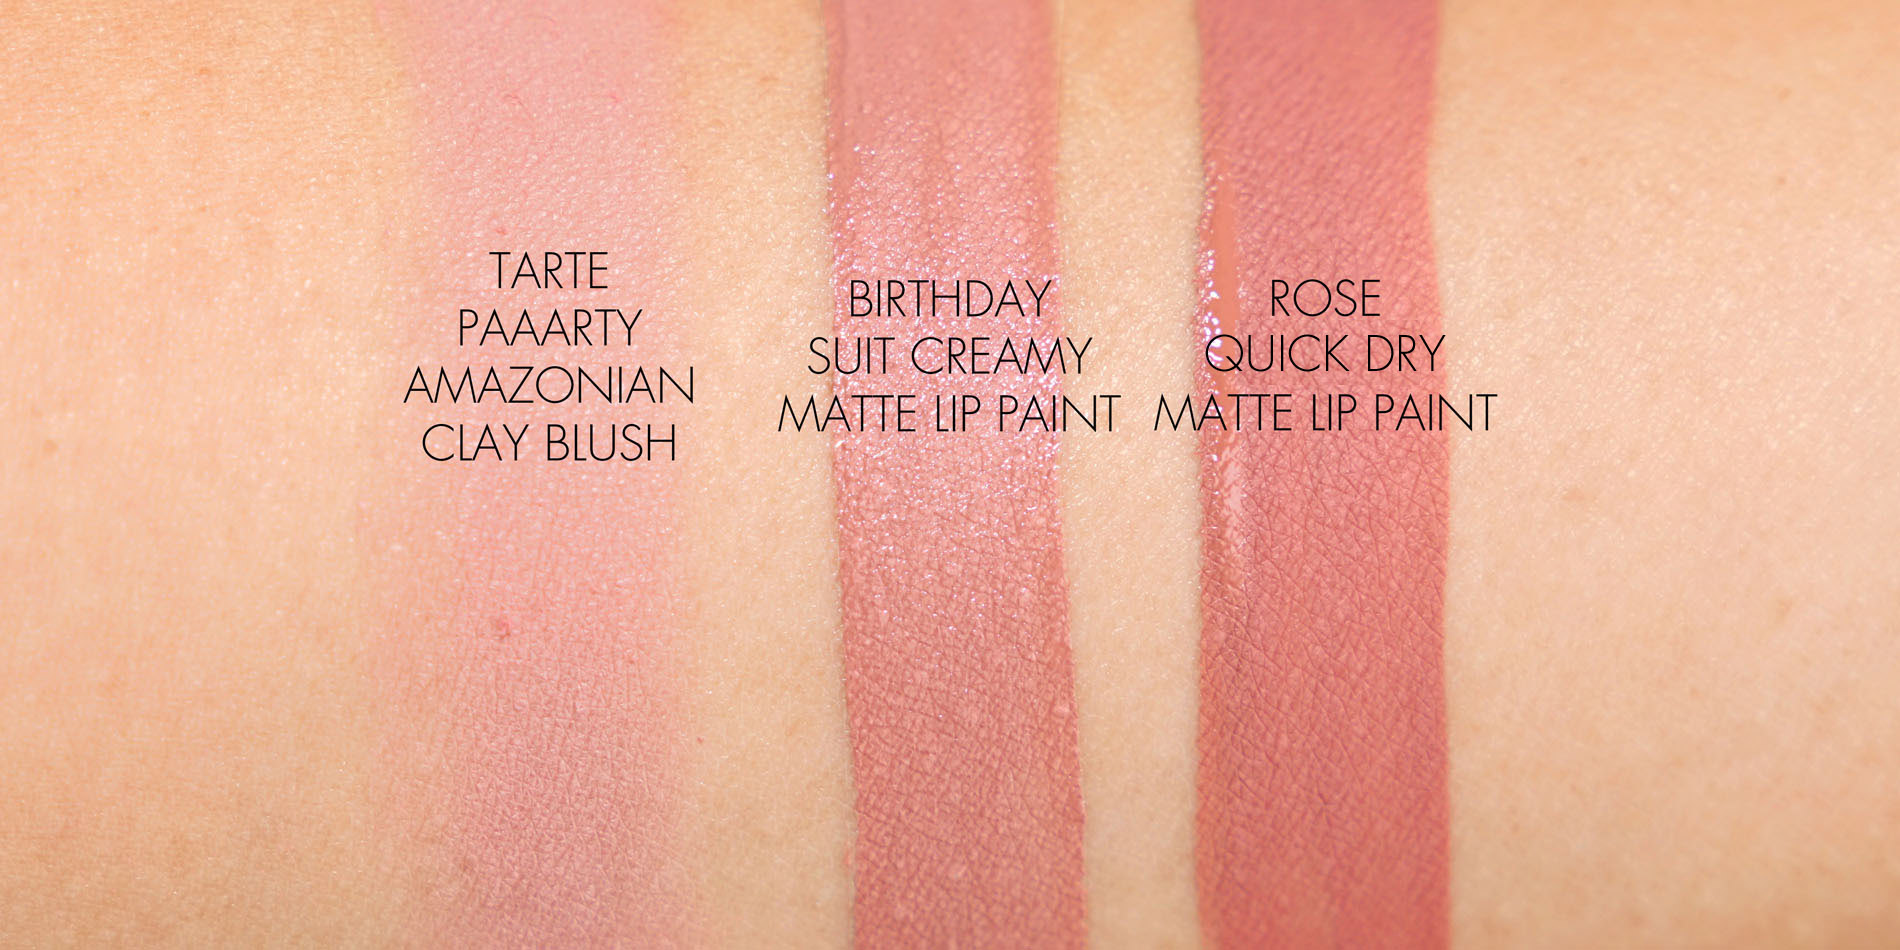 Tarte Archives The Beauty Look Book